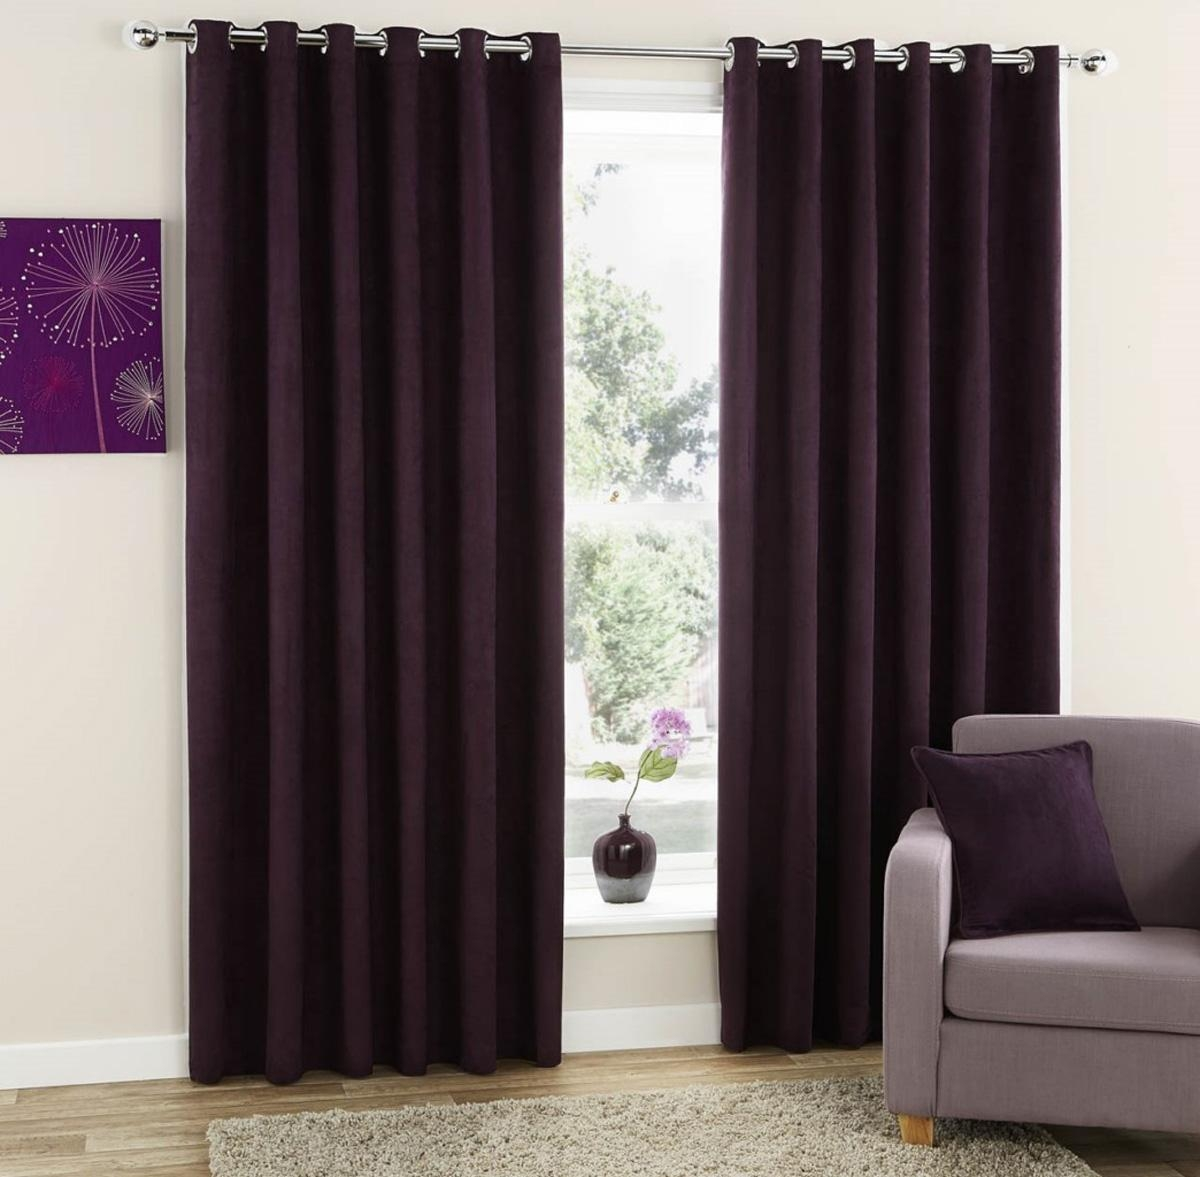 Faux Suede Ready Made Eyelet Curtains Free Uk Delivery Terrys With Regard To Brown Eyelet Curtains (Image 7 of 25)